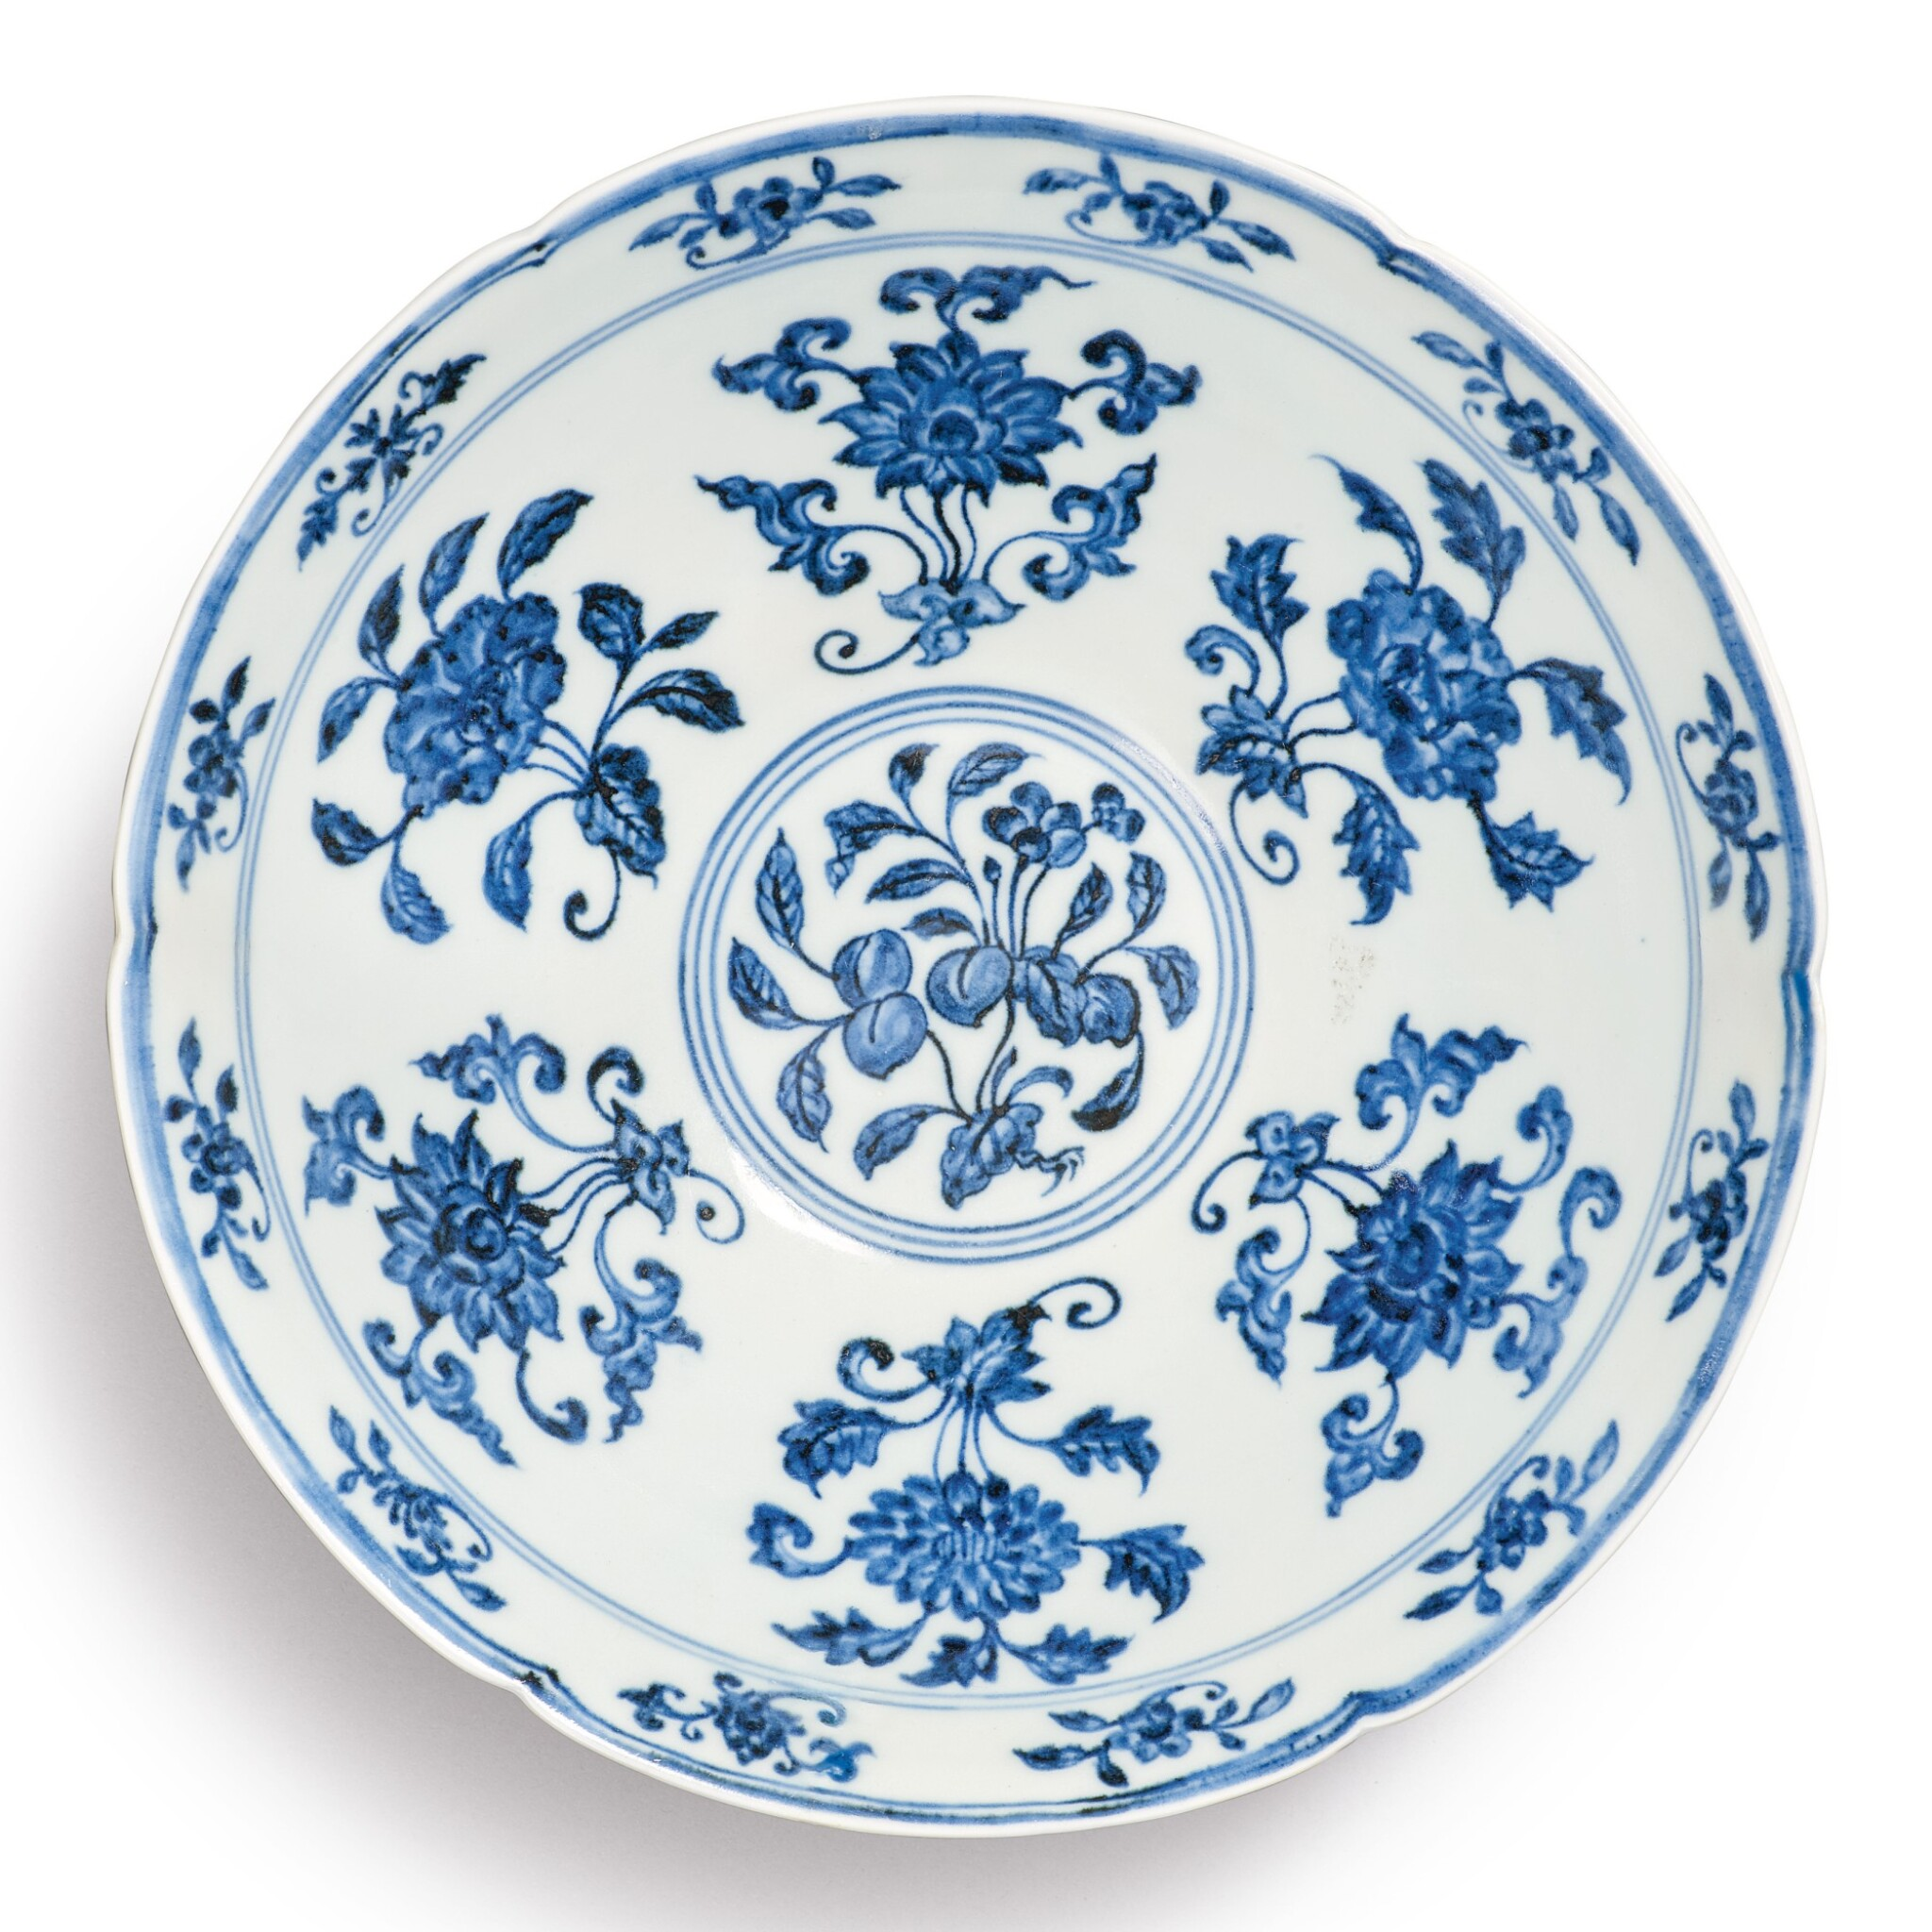 View full screen - View 1 of Lot 131. A finely painted blue and white lobed 'fruit and flower' bowl, Xuande mark and period | 明宣德 青花折枝花果紋葵口碗  《大明宣德年製》款.